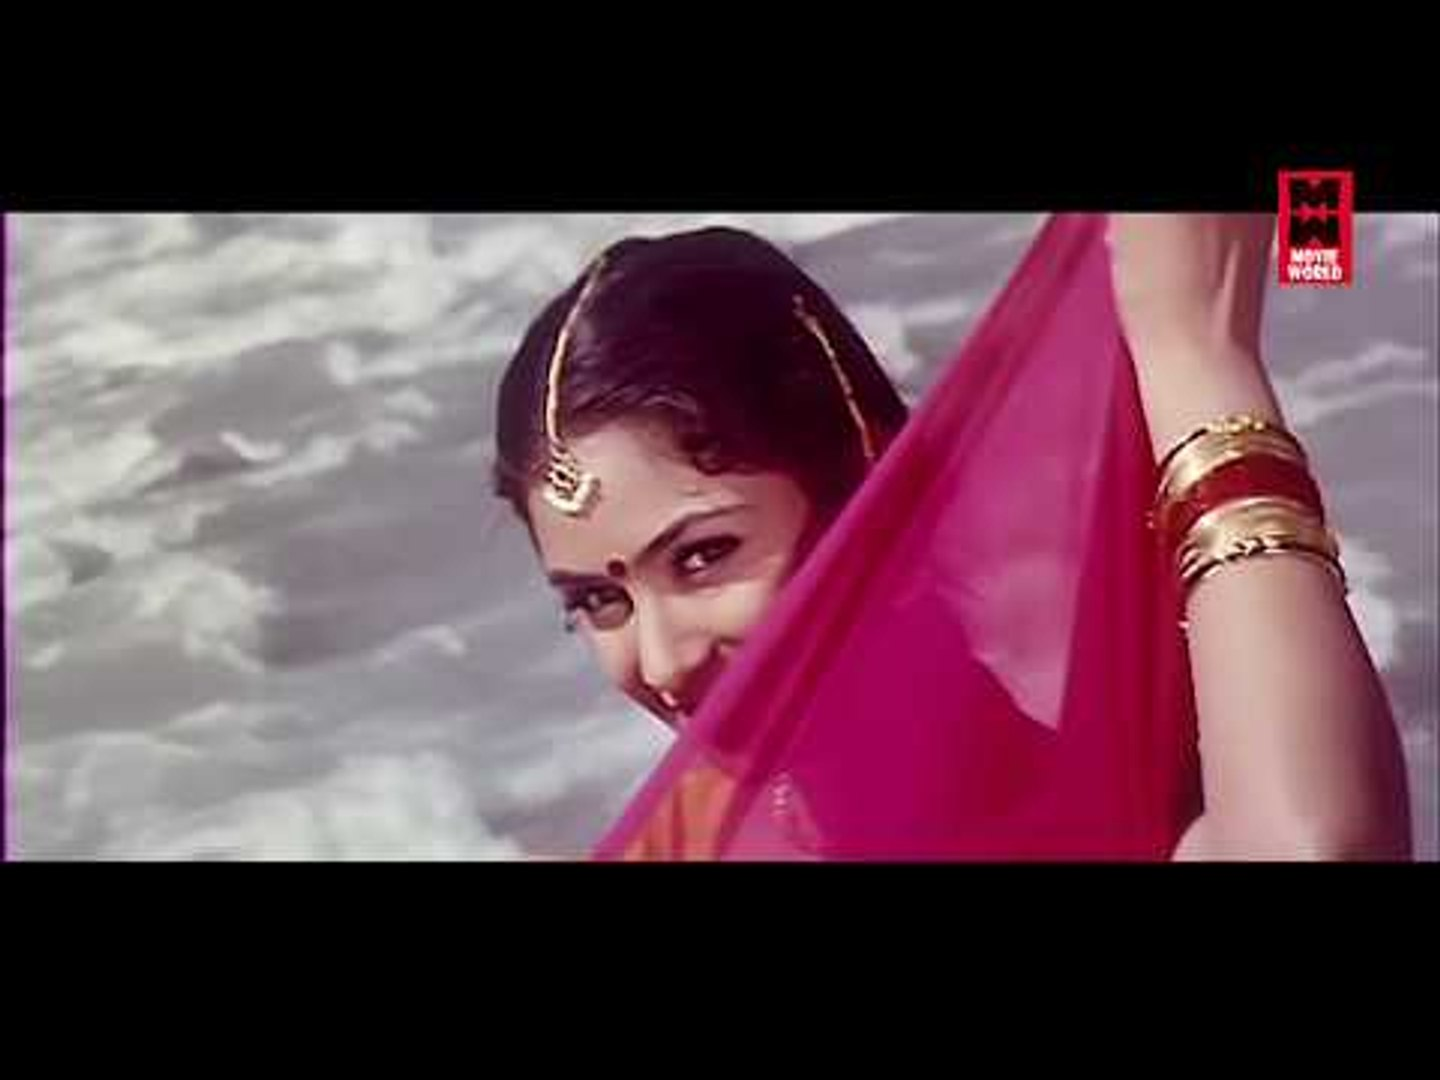 Tamil  Movies 2016 # Tamil New Movies 2016 Full Movie # Tamil Full Movie 2016 New Releases